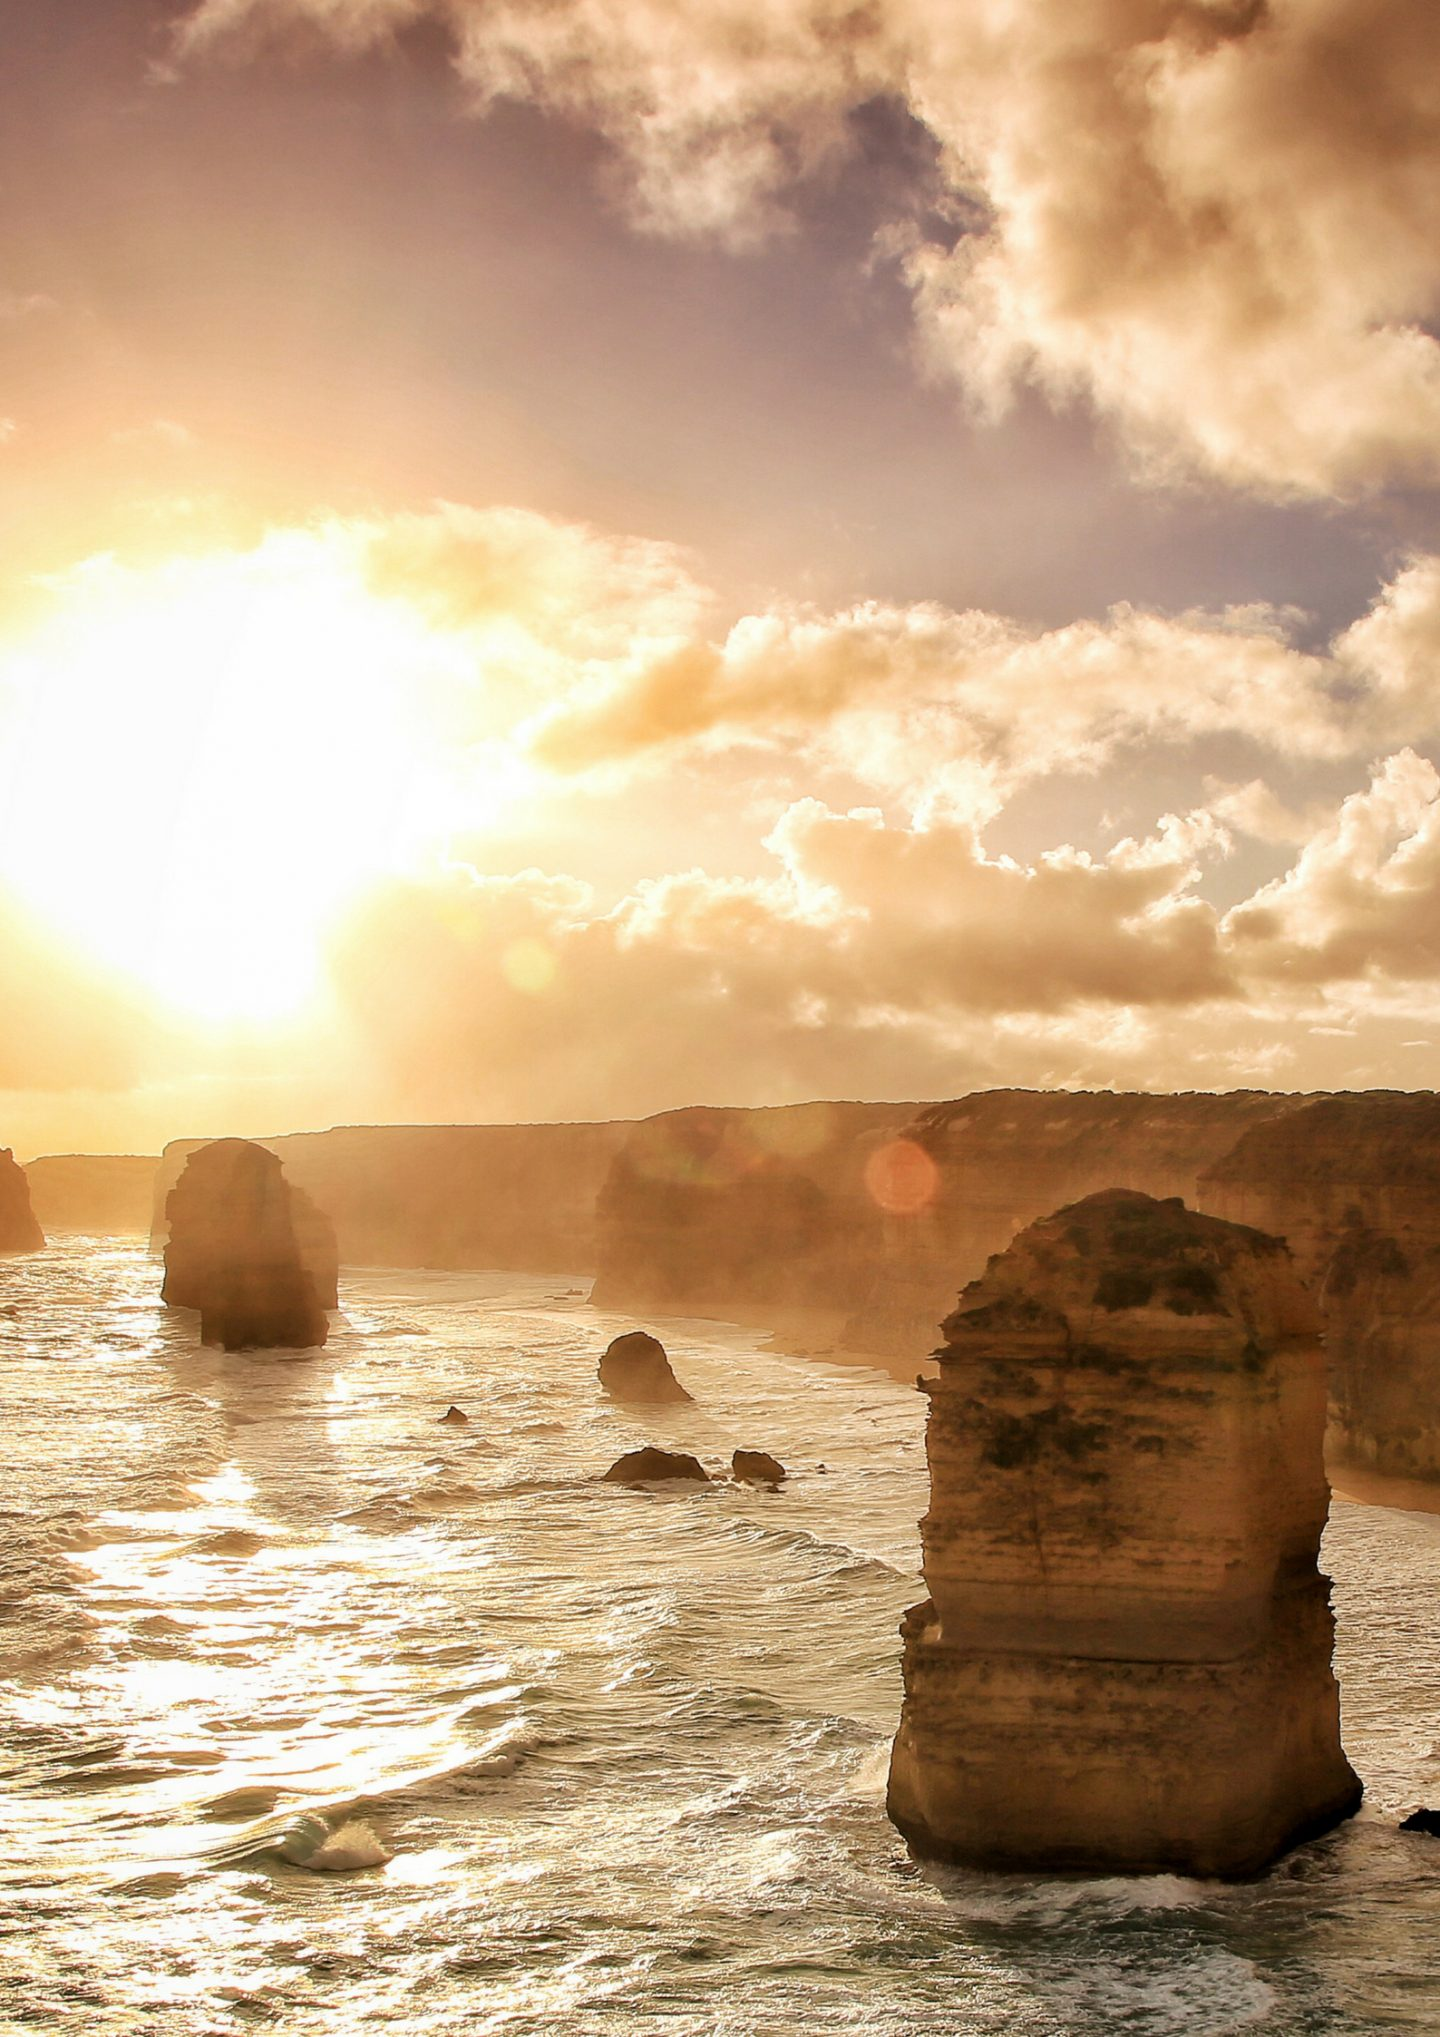 The great ocean road is one of the most scenic drives you will ever do. The 234-kilometer long route takes you along some of Australia's most amazing scenery.